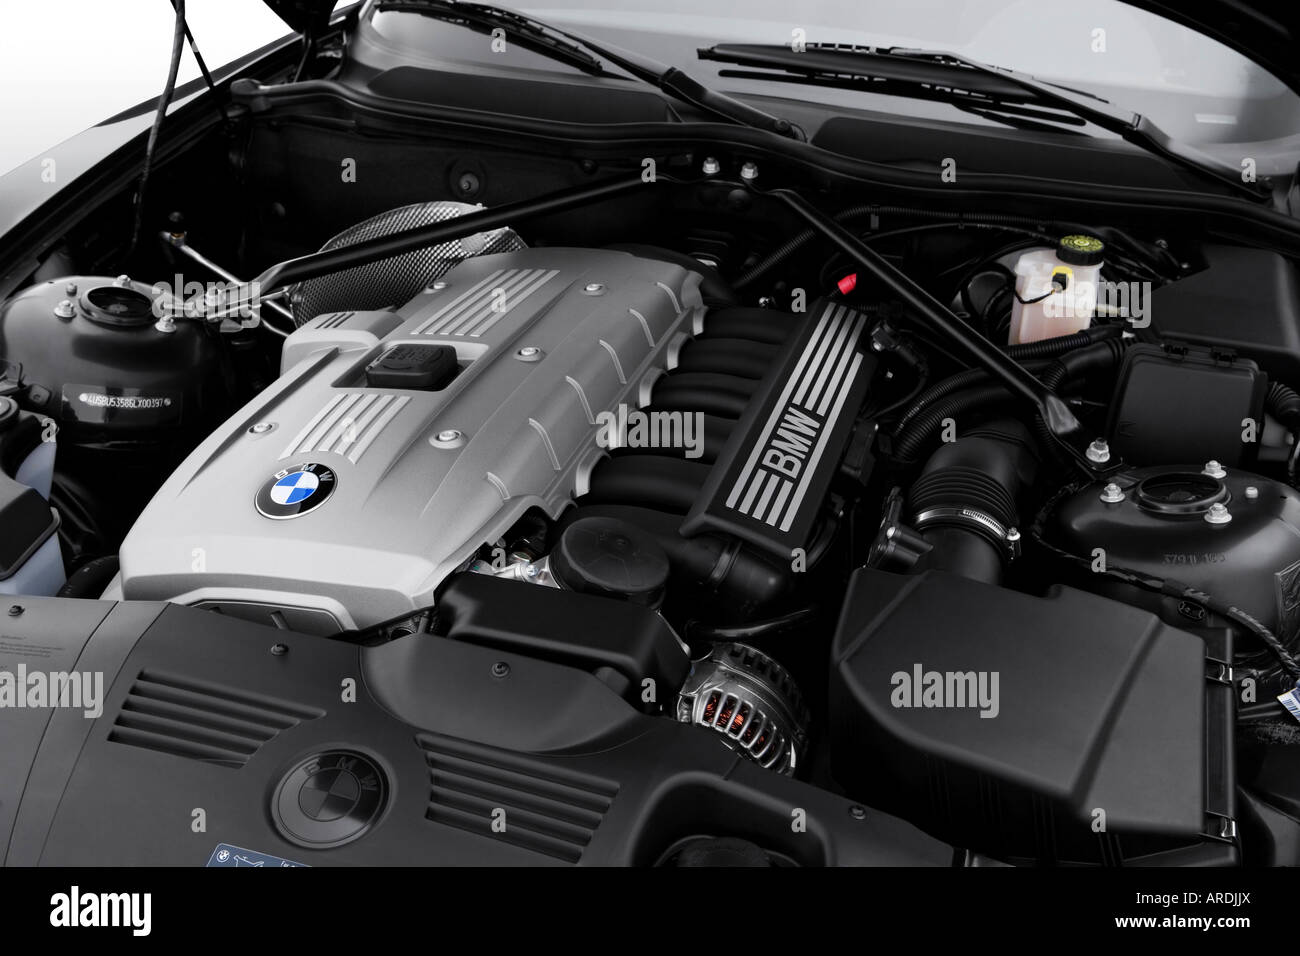 2006 bmw z4 roadster 3.0si in black - engine stock photo, royalty